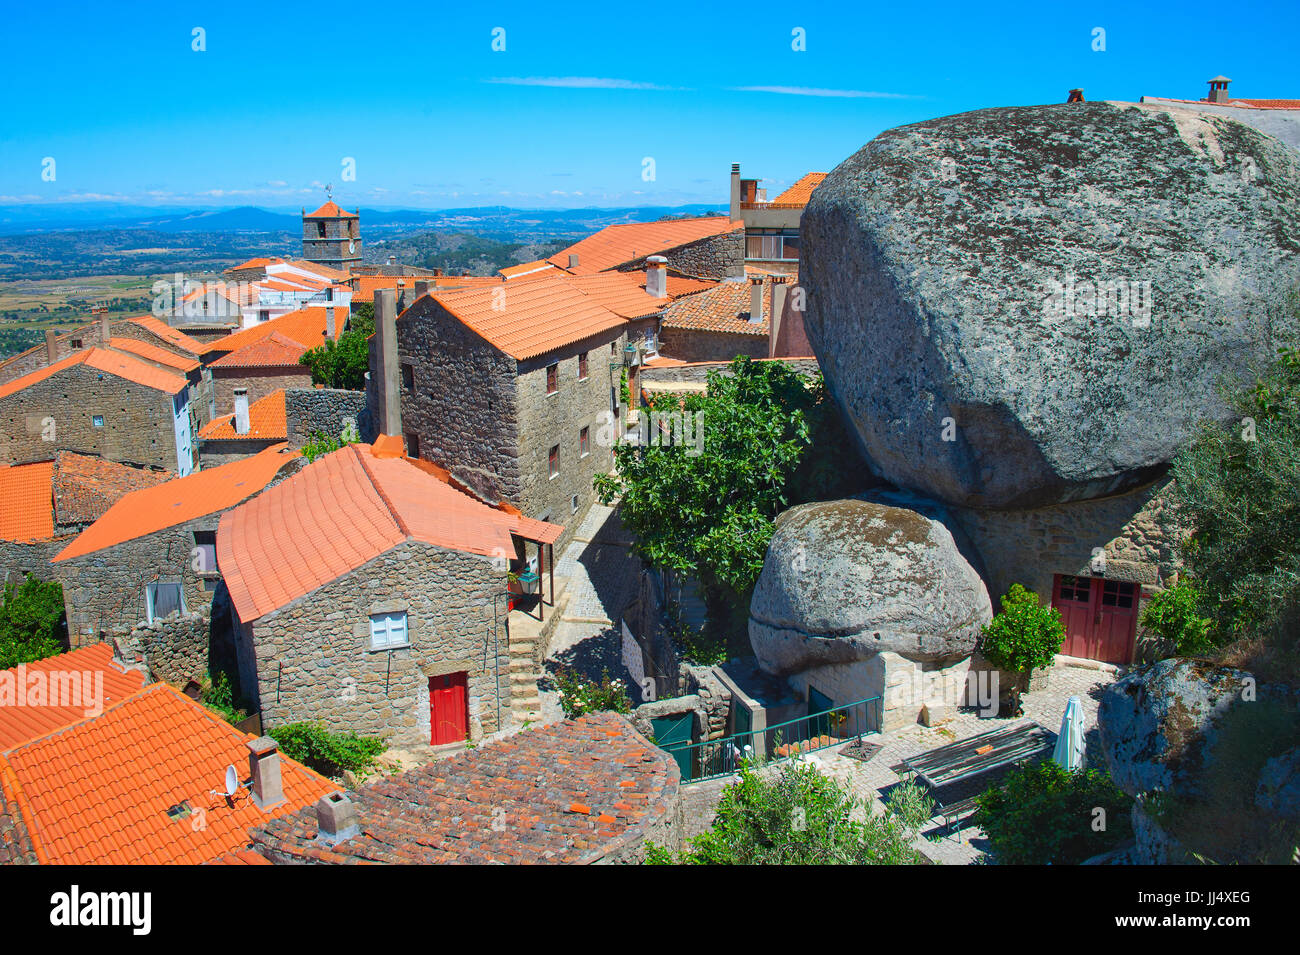 Overlooking of Monsanto village, Portugal. This village is famous for its stone houses. Stock Photo